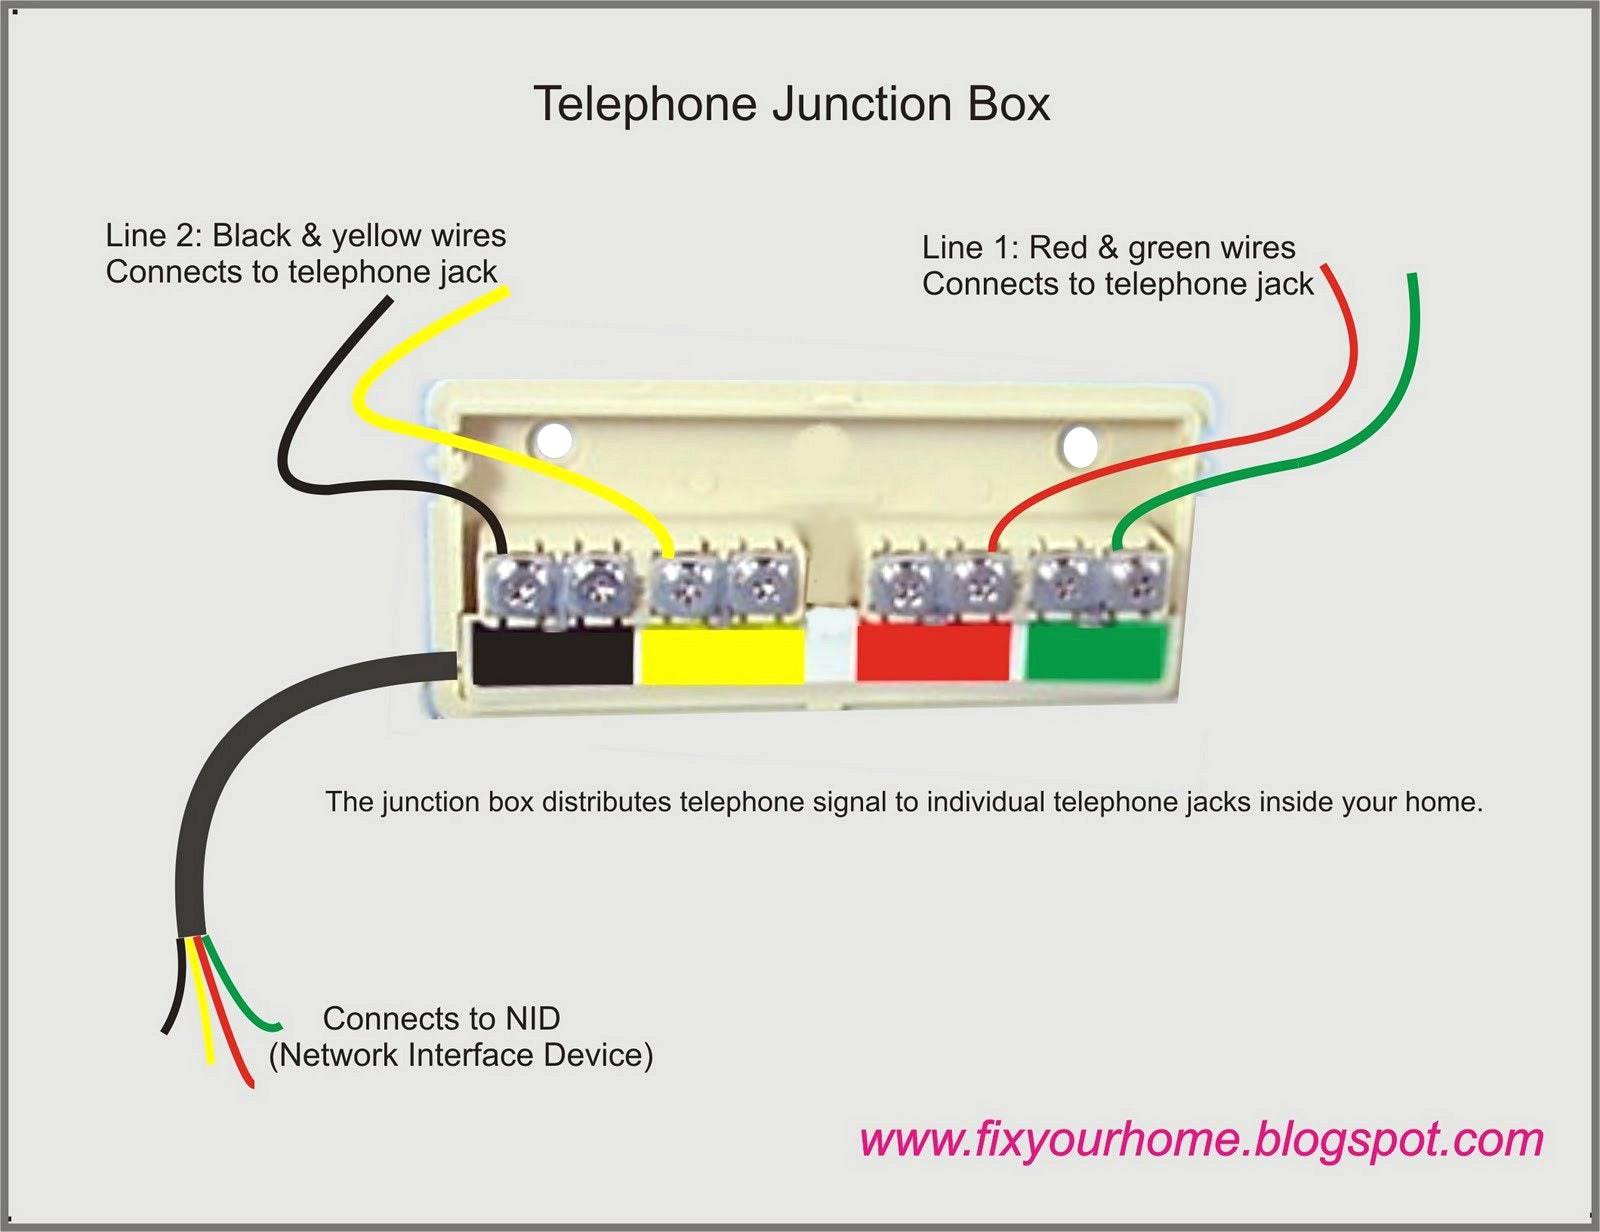 Outside Phone Box Wiring Diagram | Wiring Library - Telephone Junction Box Wiring Diagram